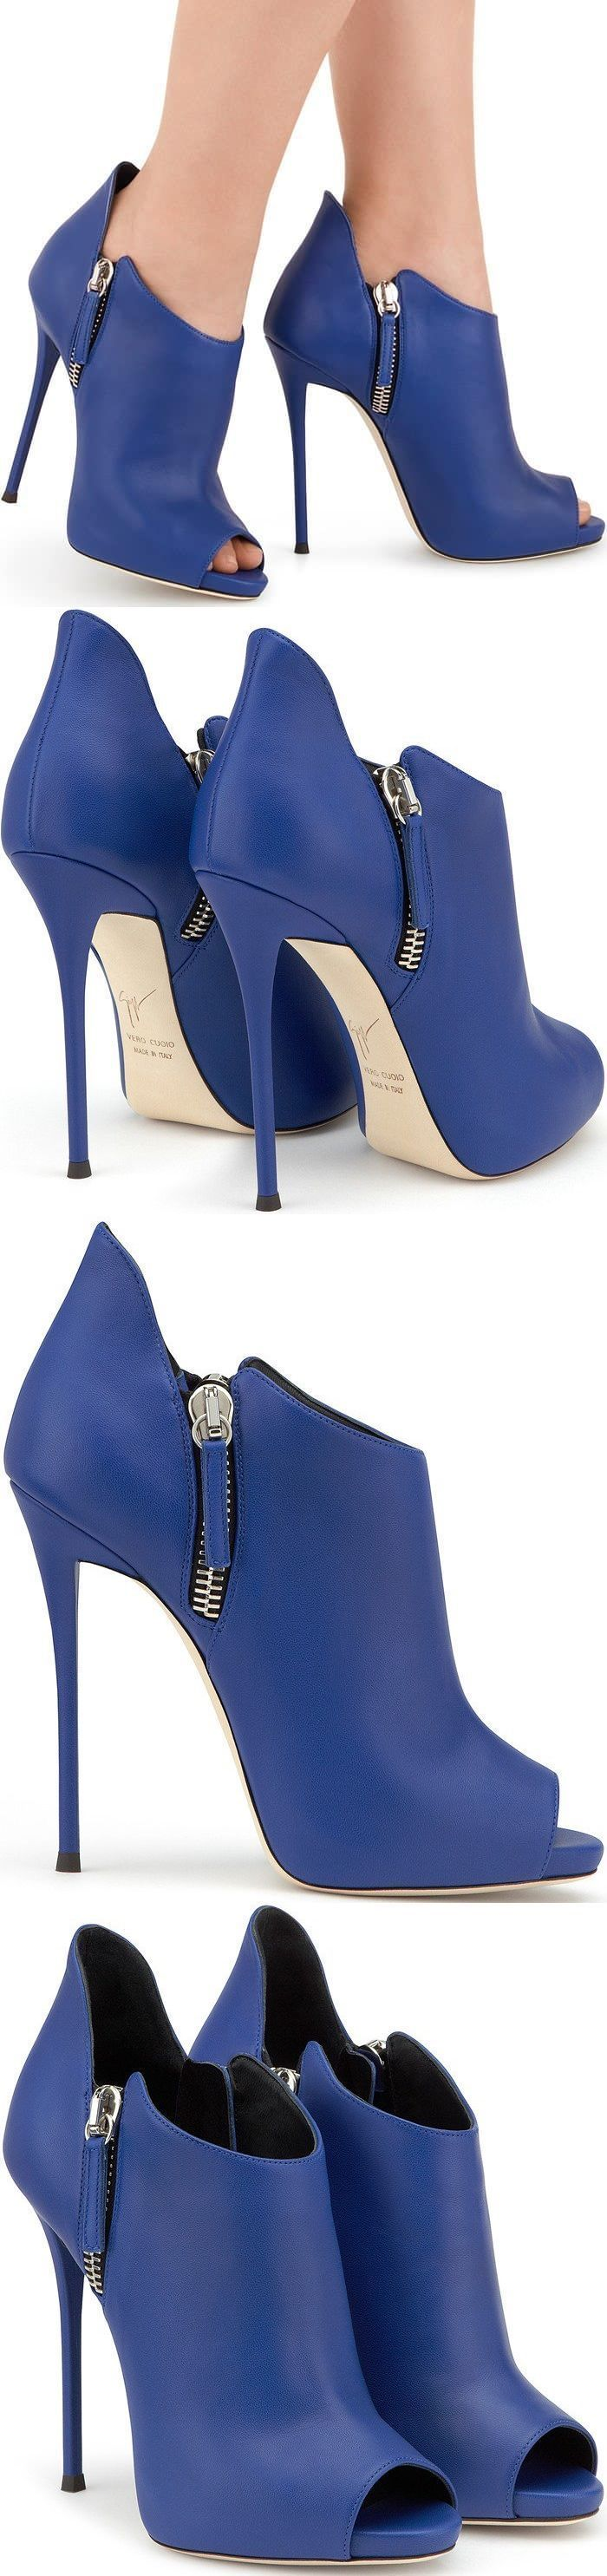 Blue leather 'Malika' booties from Giuseppe Zanotti Design featuring a peep toe, gold-tone hardware, side zip fastenings, a branded insole and a high stiletto heel. #stilettoheelssandals #giuseppezanottiheelsstilettos #stilettoheels2017